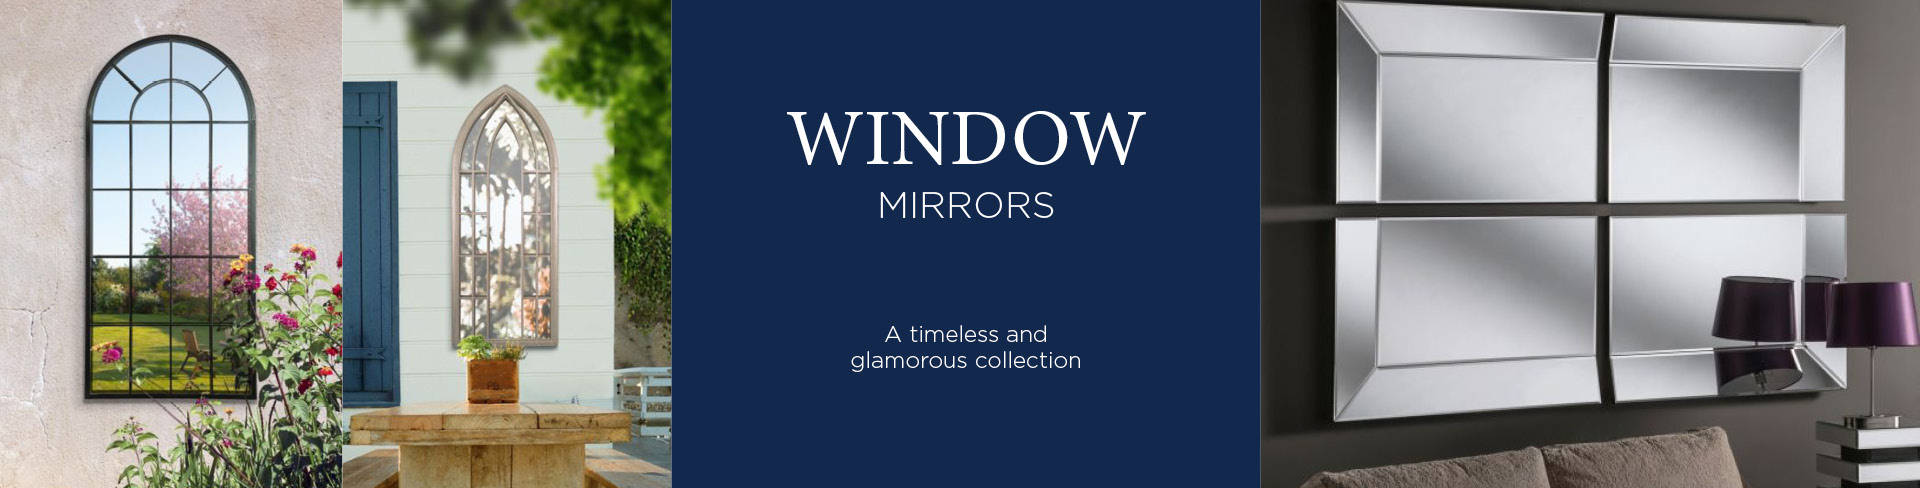 Window Mirrors